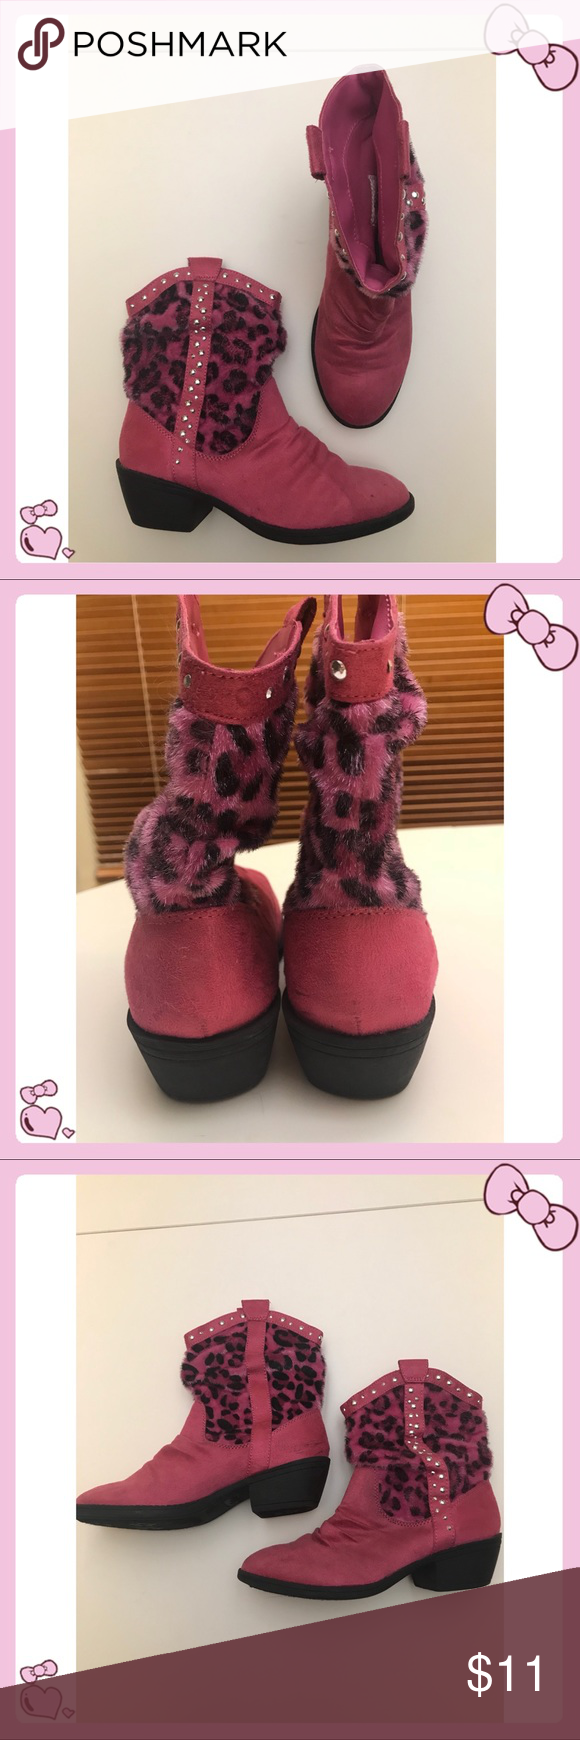 Justice Hot Pink Leopard Boots Hot Pink Leopard Leopard Boots Pink Suede